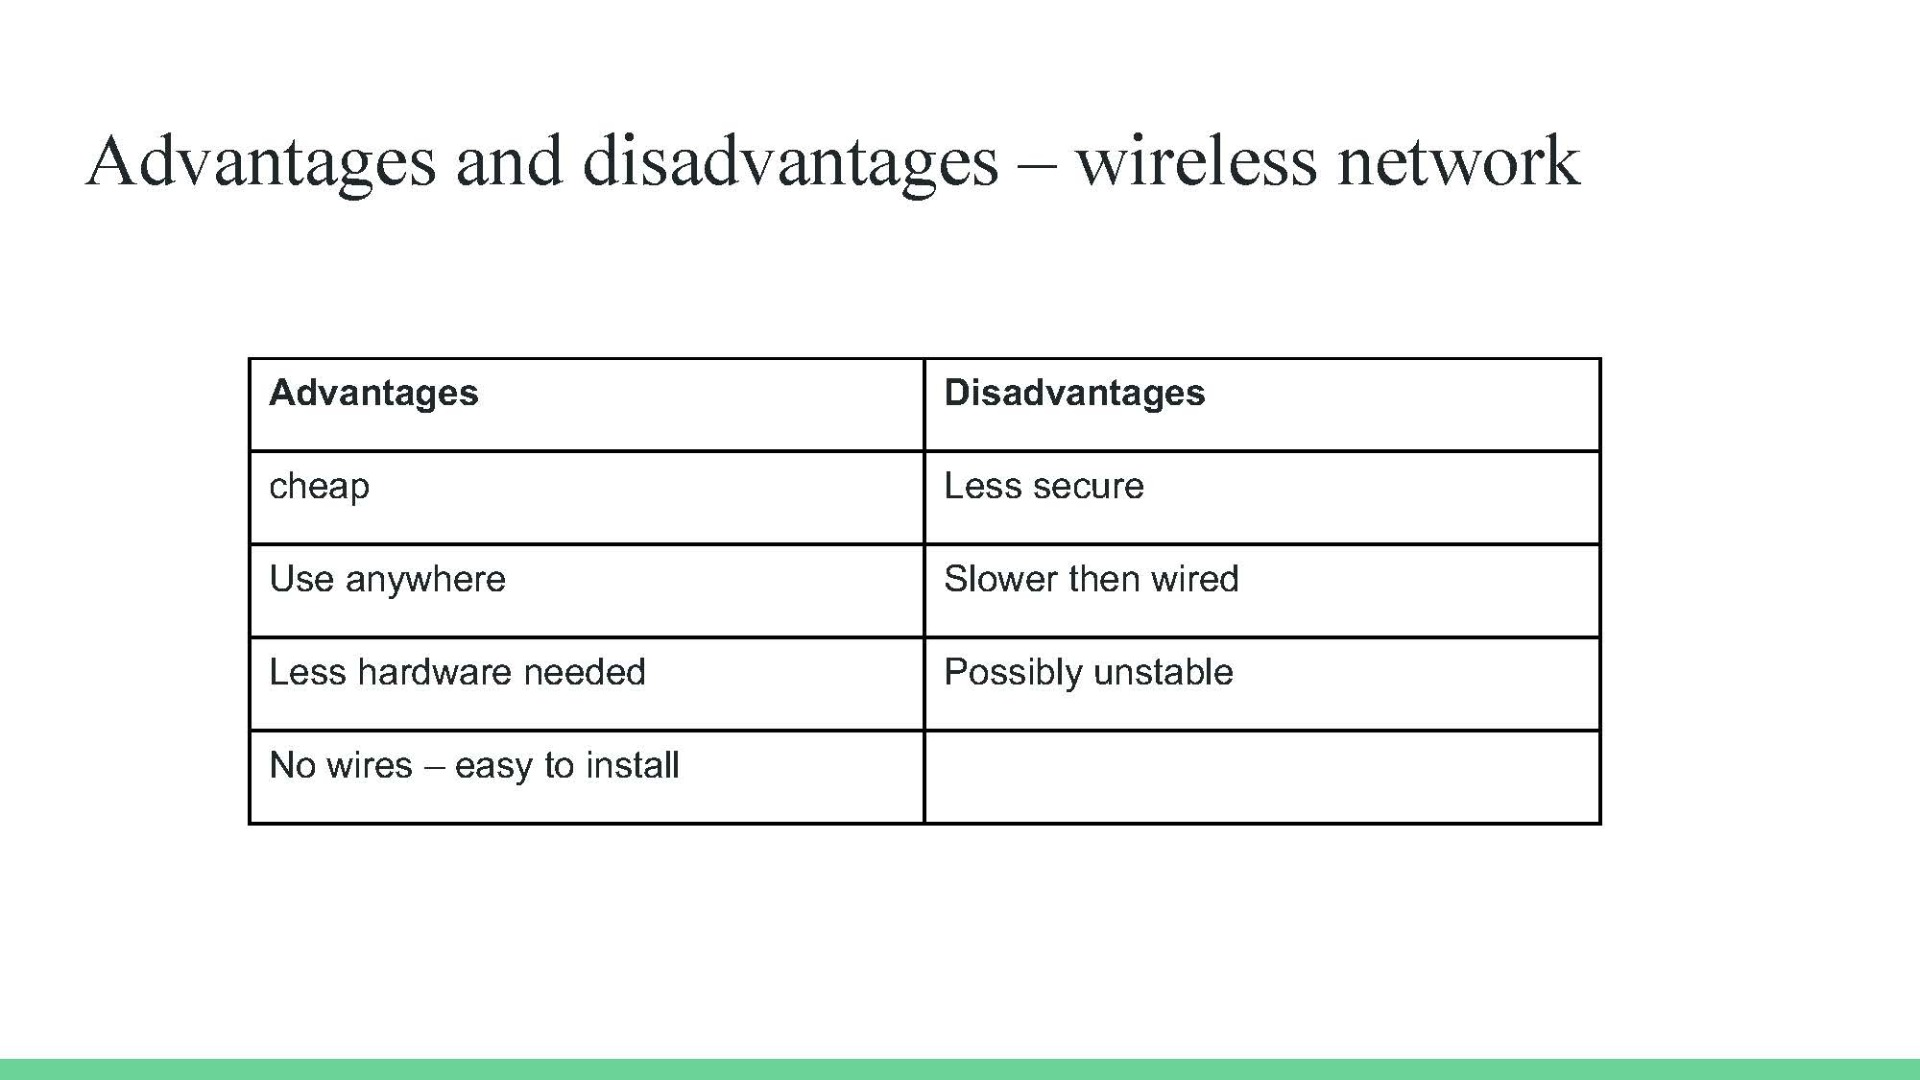 What are some advantages and some disadvantages of WiFi Cameras?